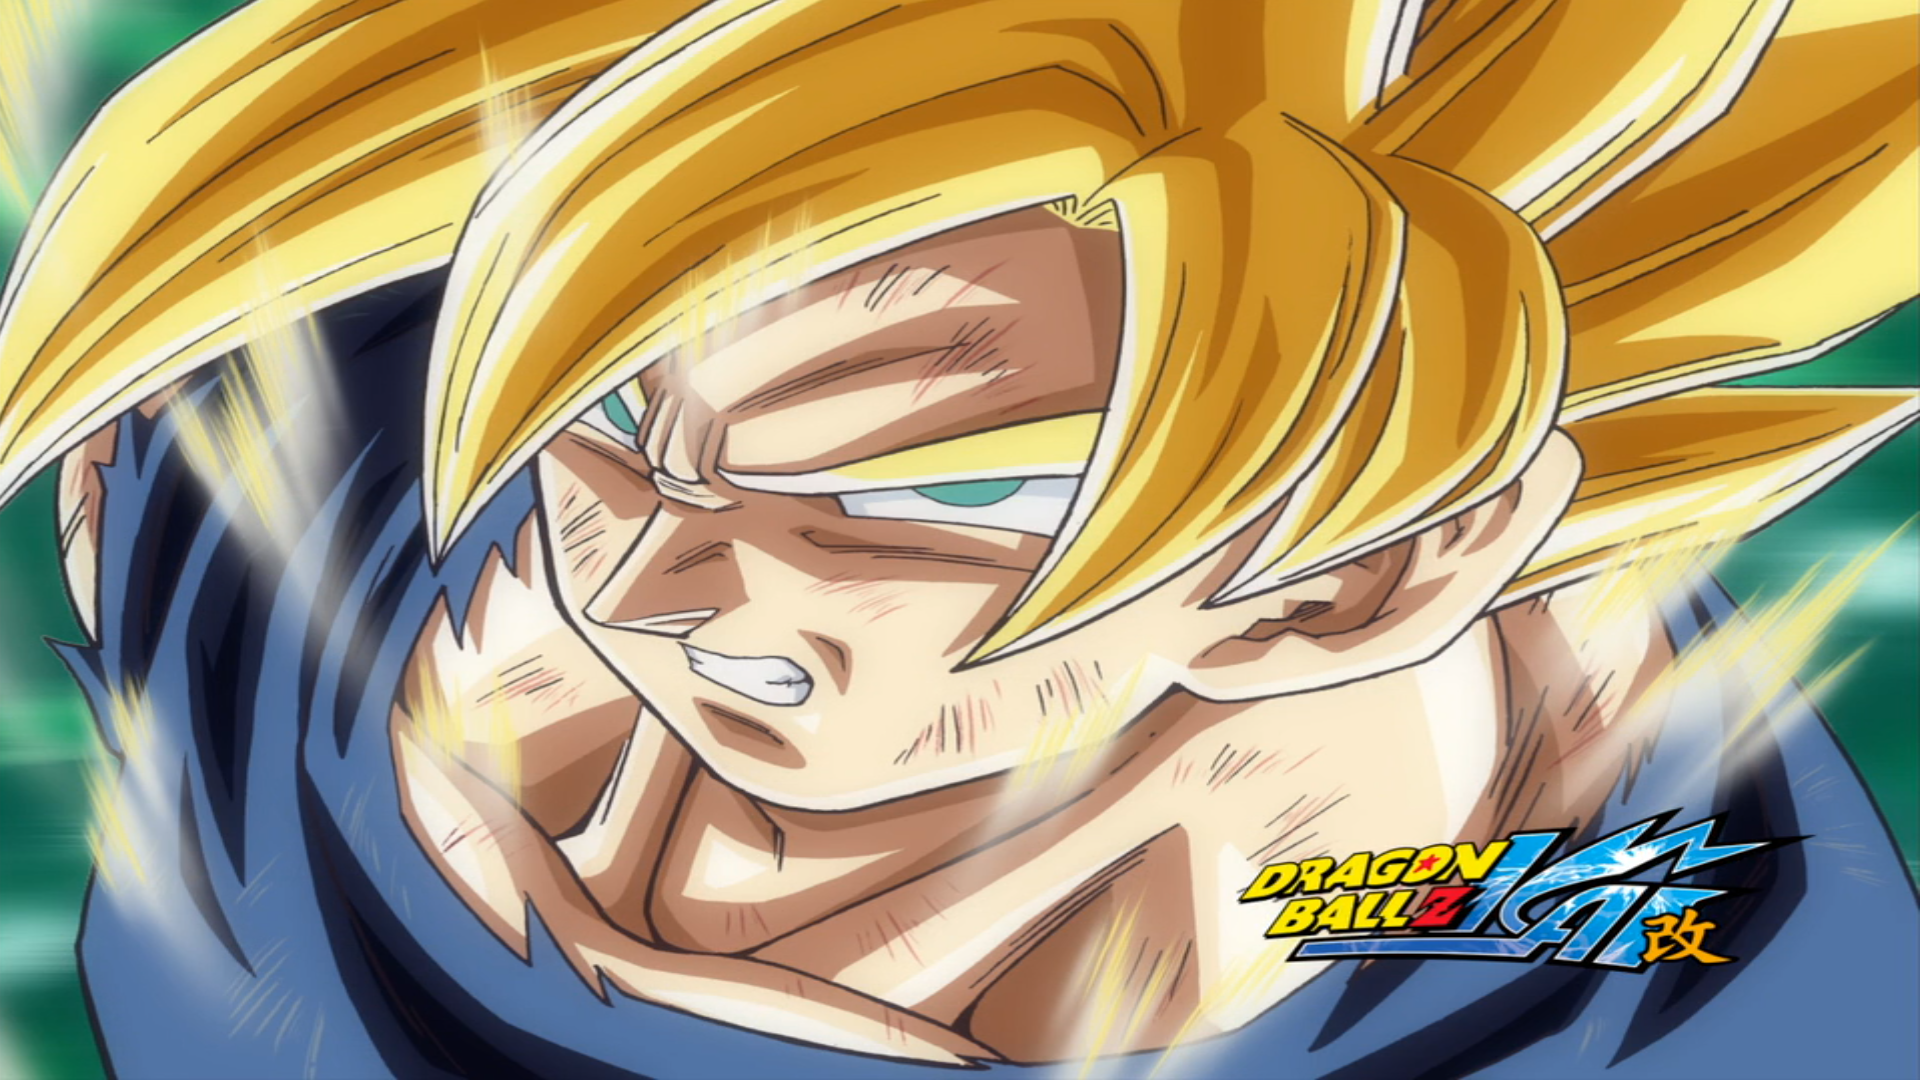 COMO DESCARGAR IMAGENES PNG DE DRAGON BALL Z - YouTube